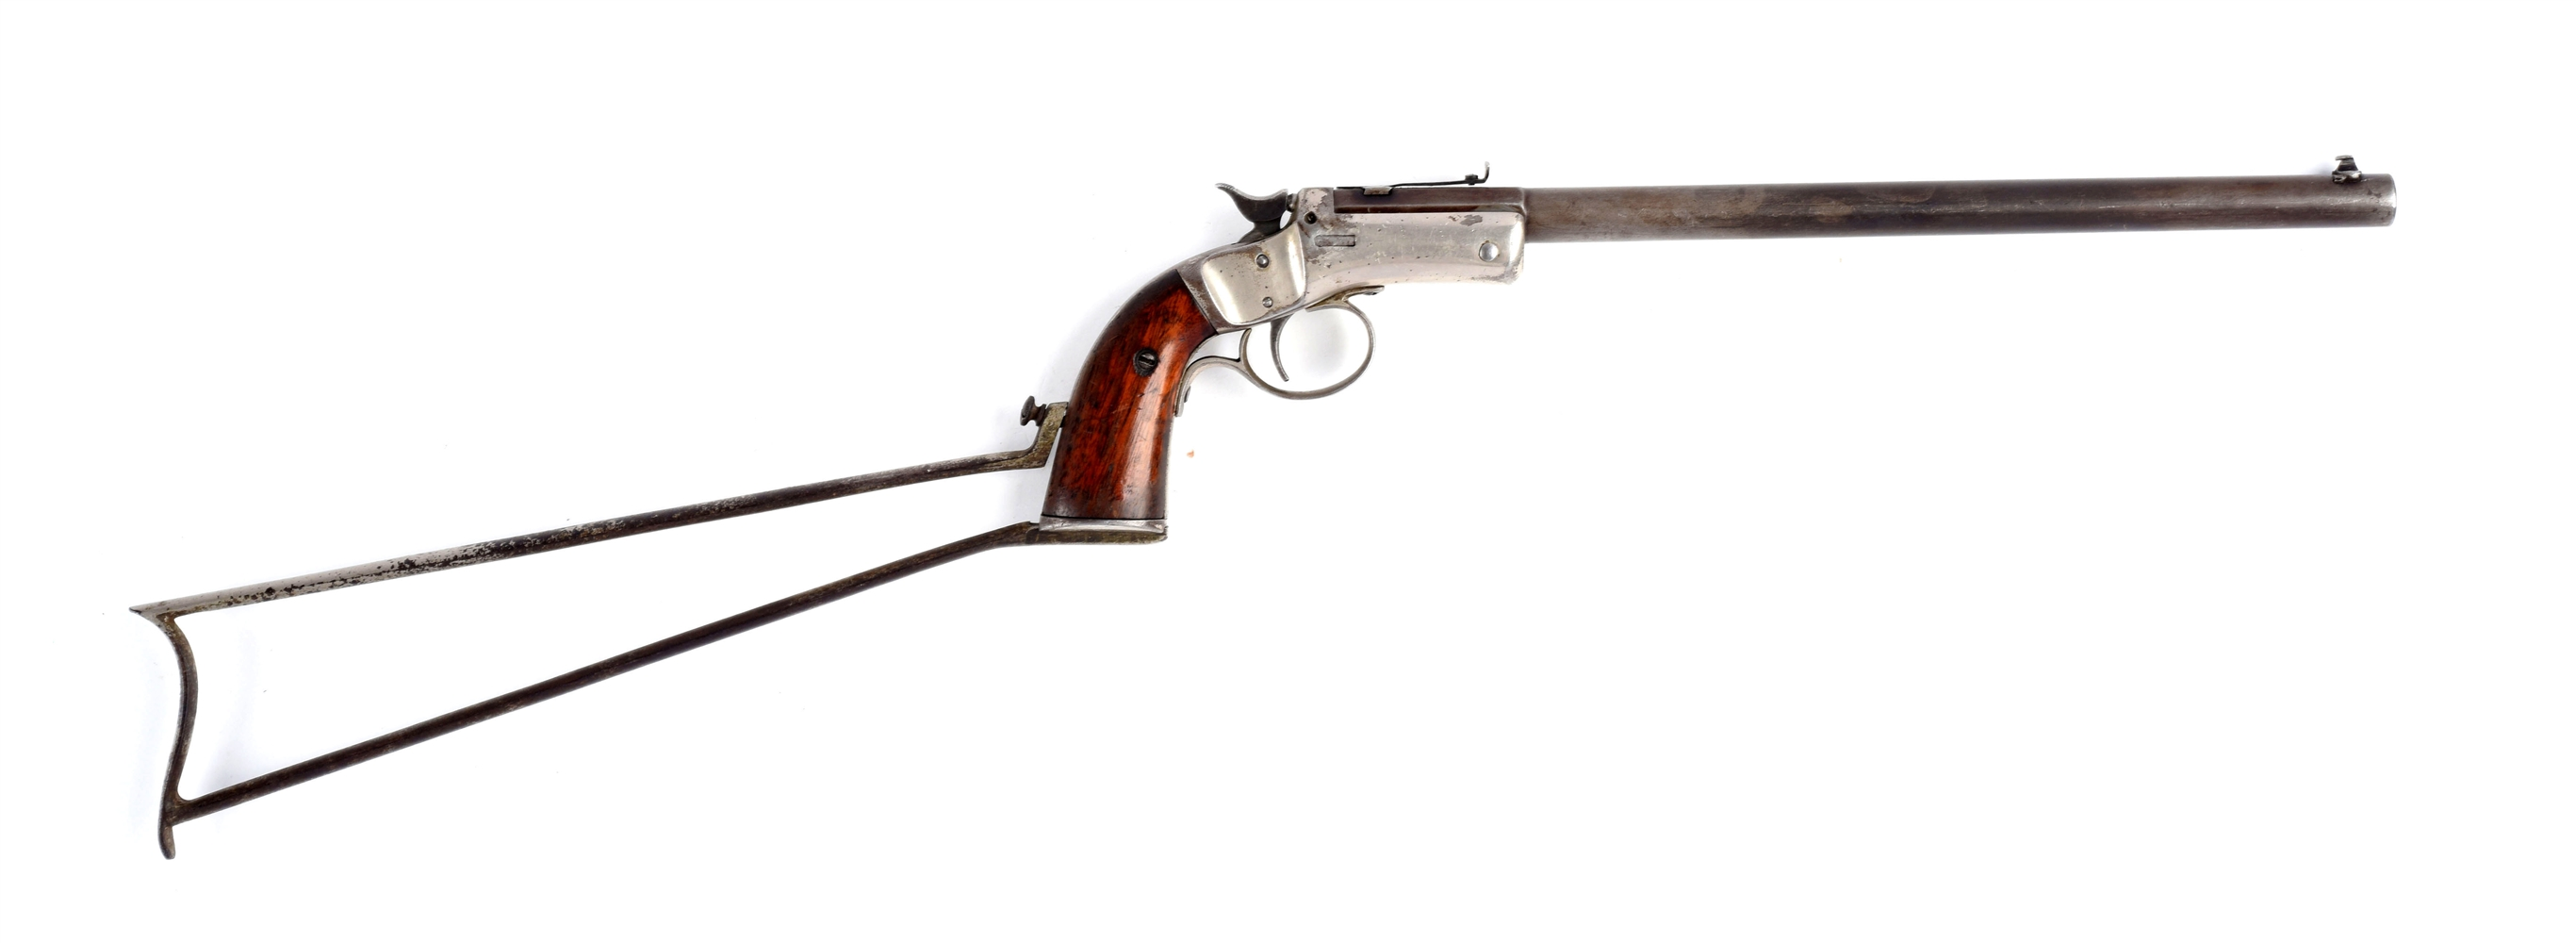 (C) Stevens New Model Pocket Rifle No. 40 with Stock.